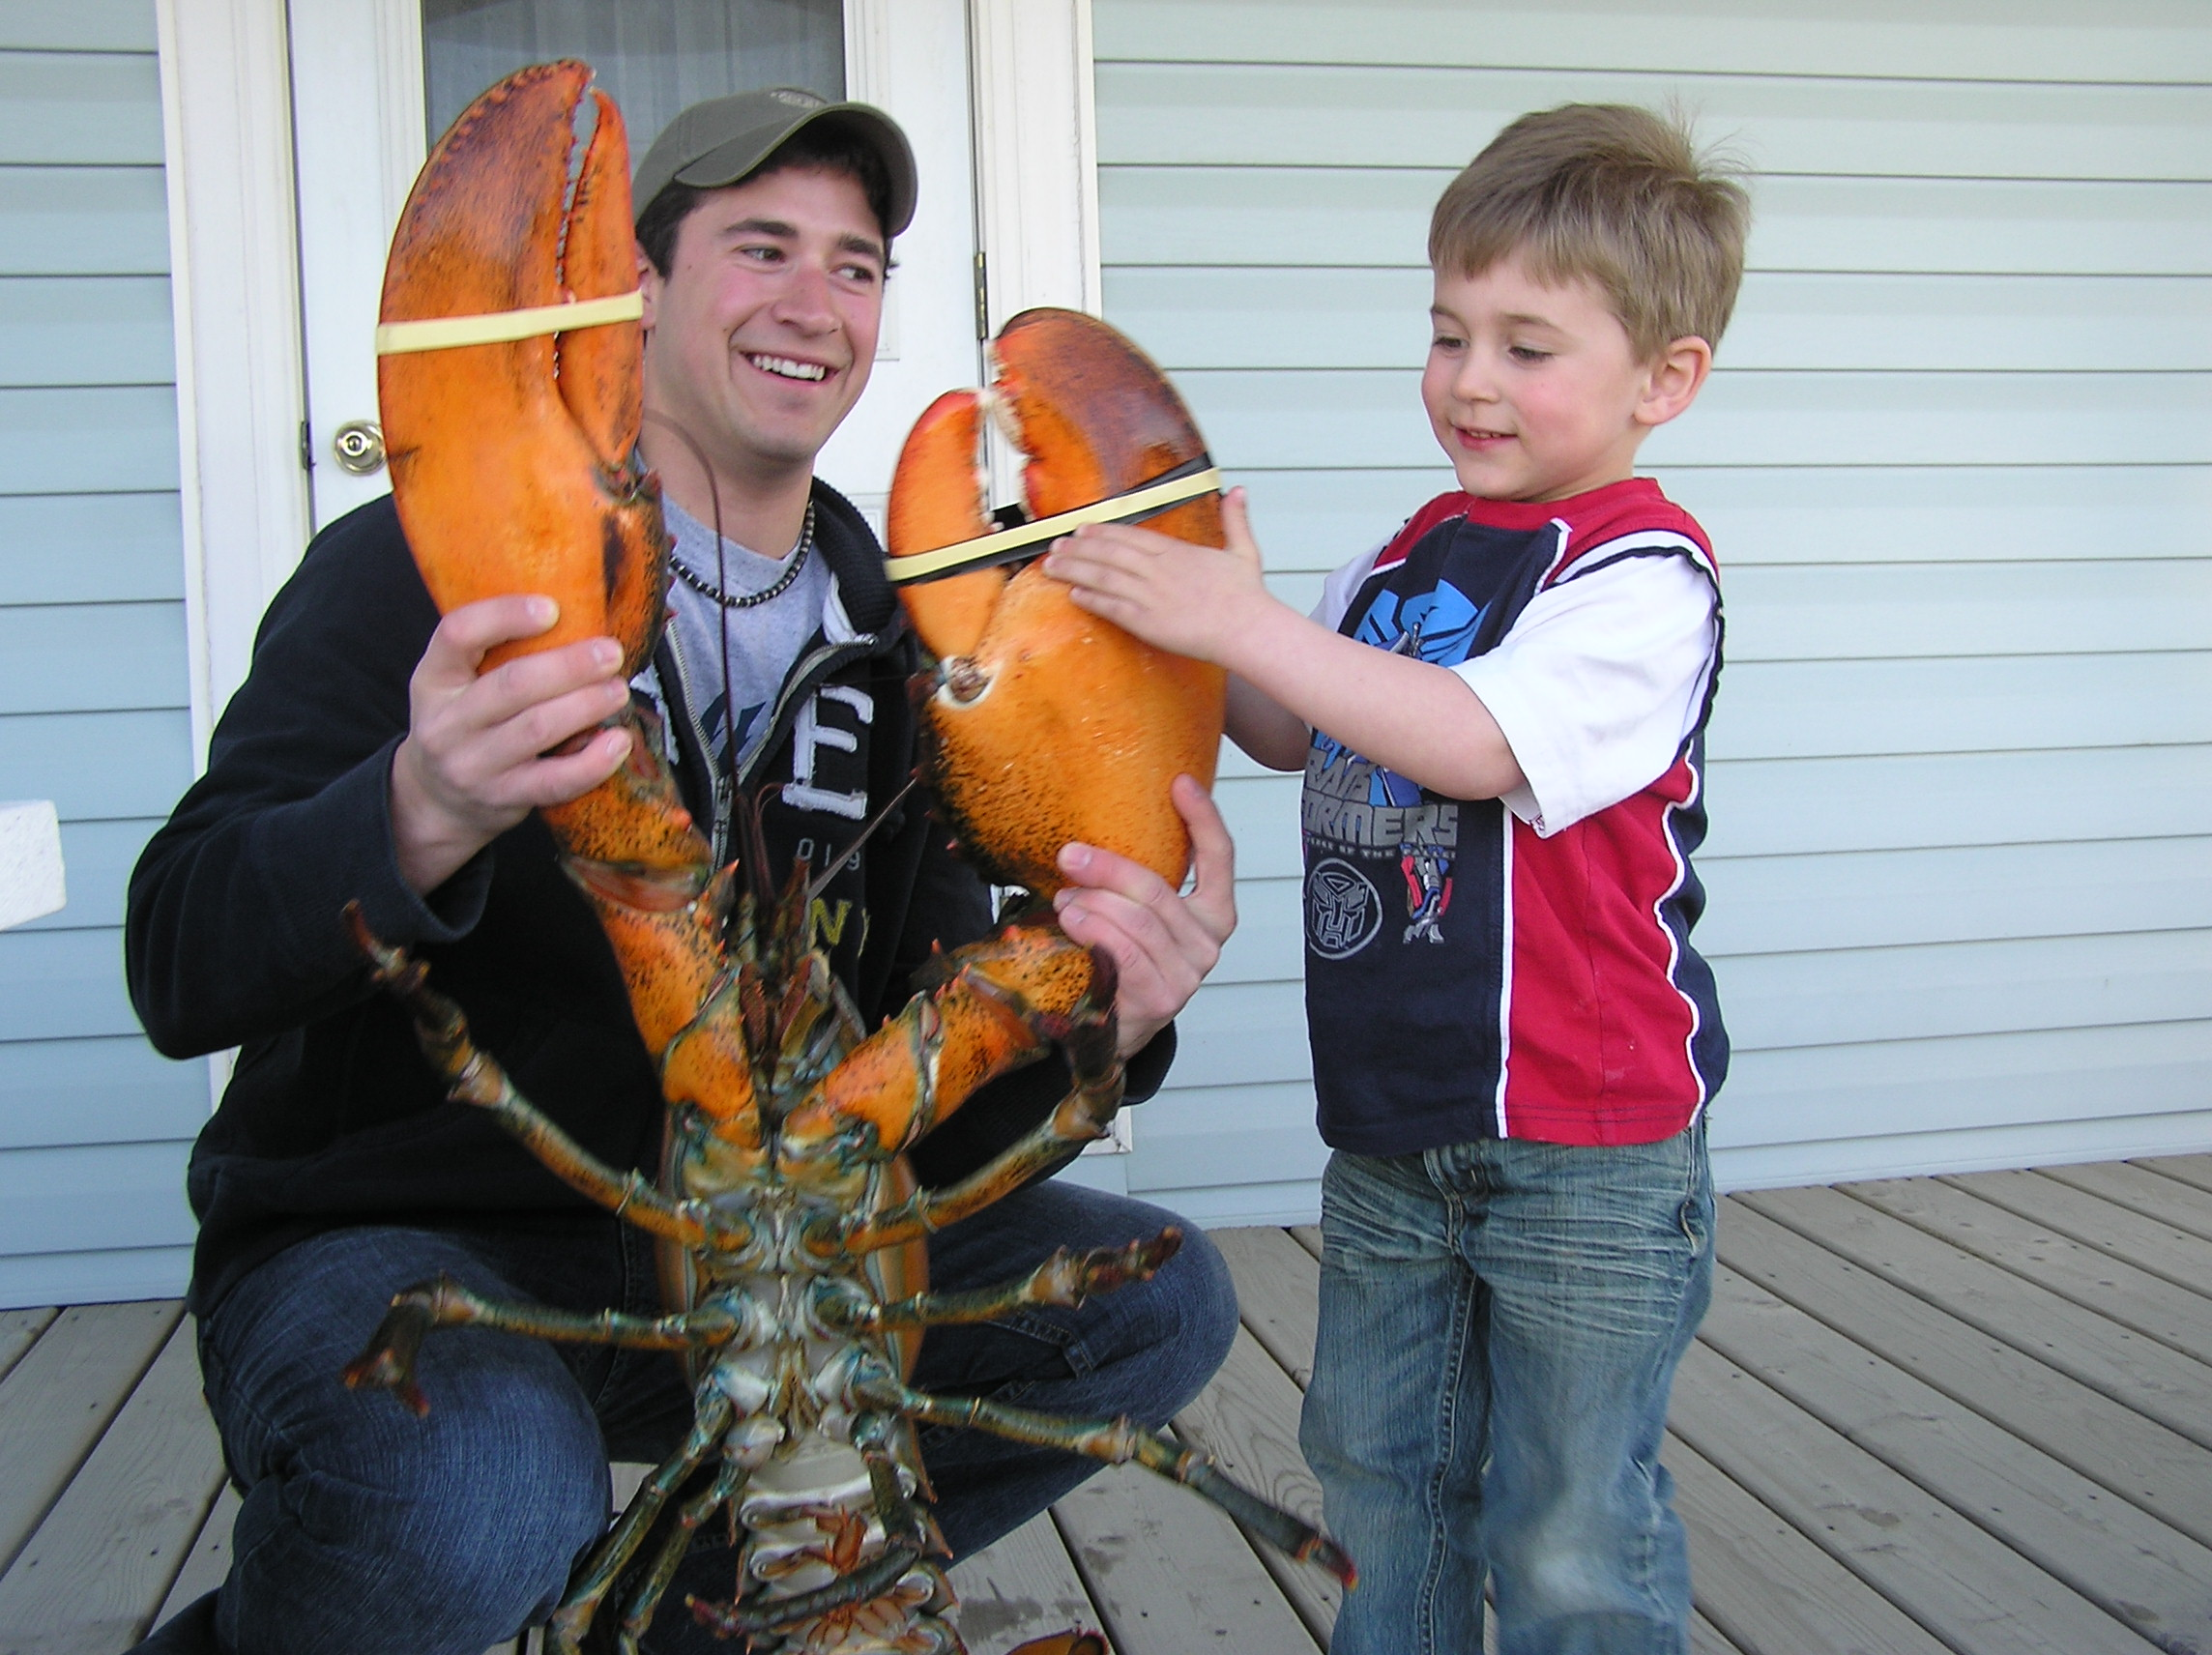 Fisherman Discovers Giant 14-Pound Lobster: 'Never In My Life Have I Seen Anything This Big ...